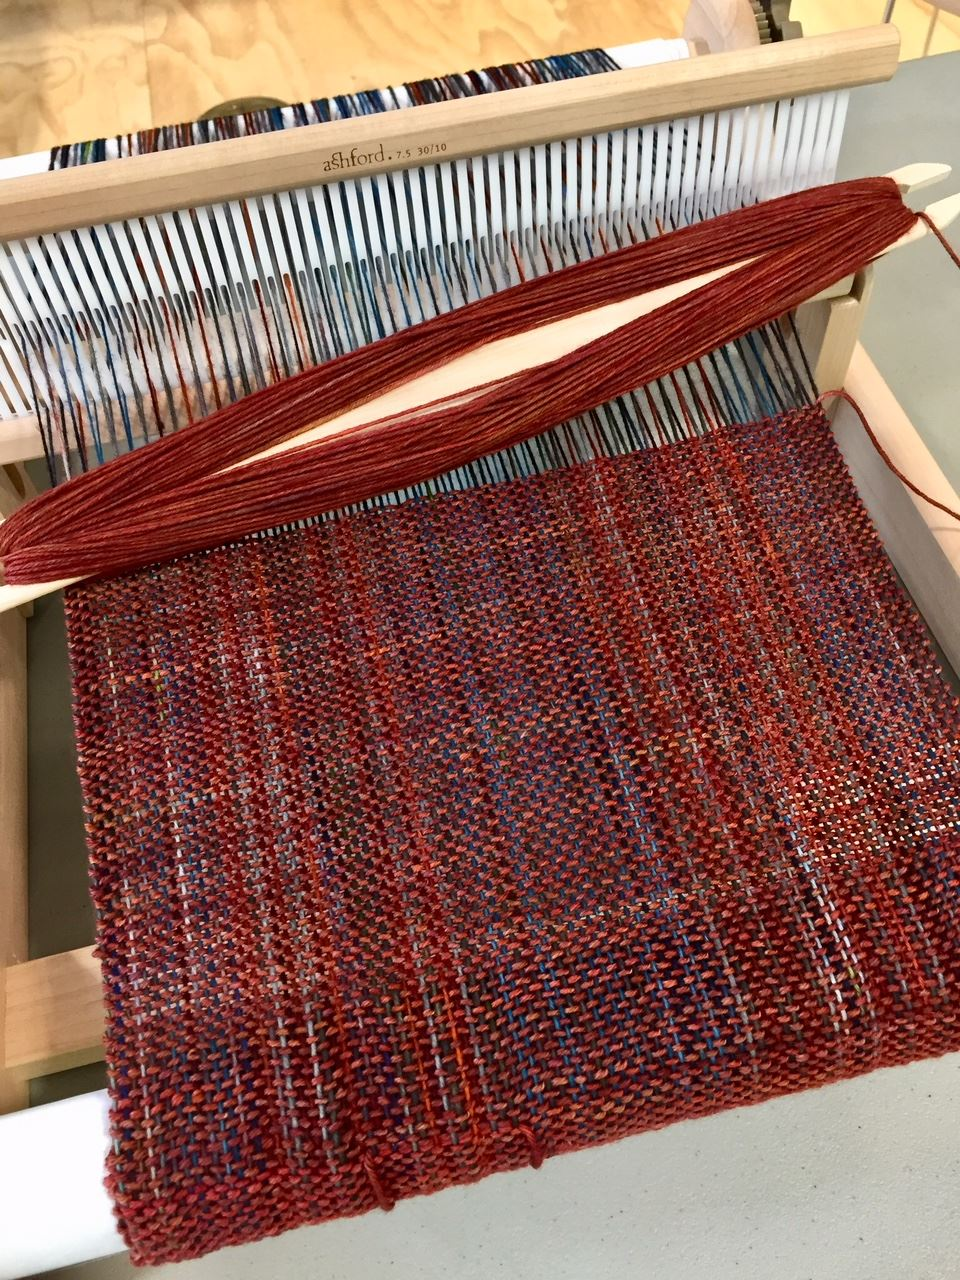 Weaving from the vine - a master class for beginners